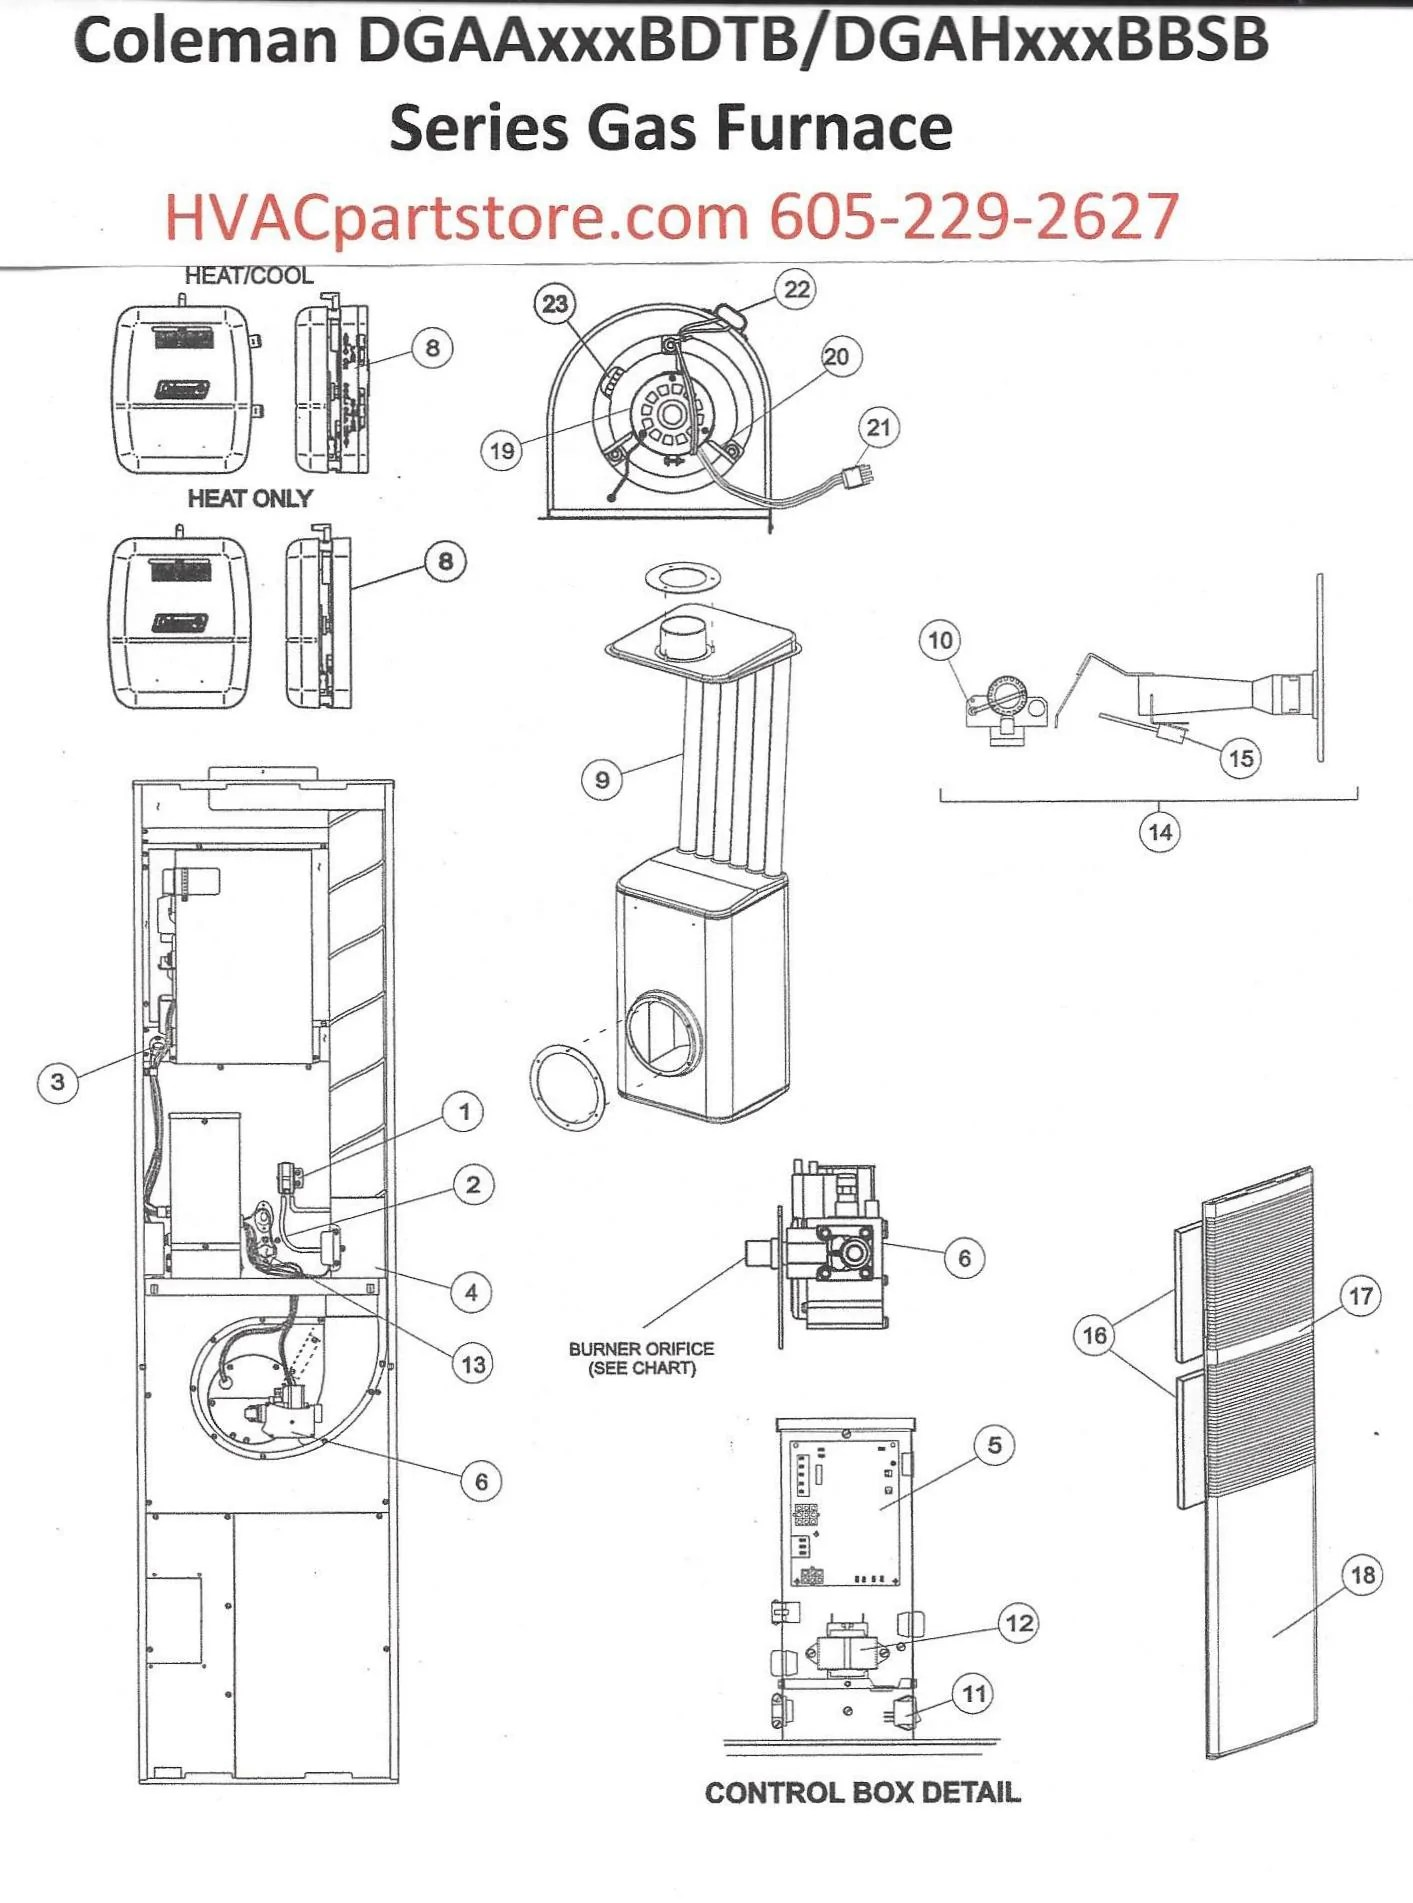 click here to view a manual for the dgah077bbsb which includes wiring diagrams  [ 1413 x 1903 Pixel ]